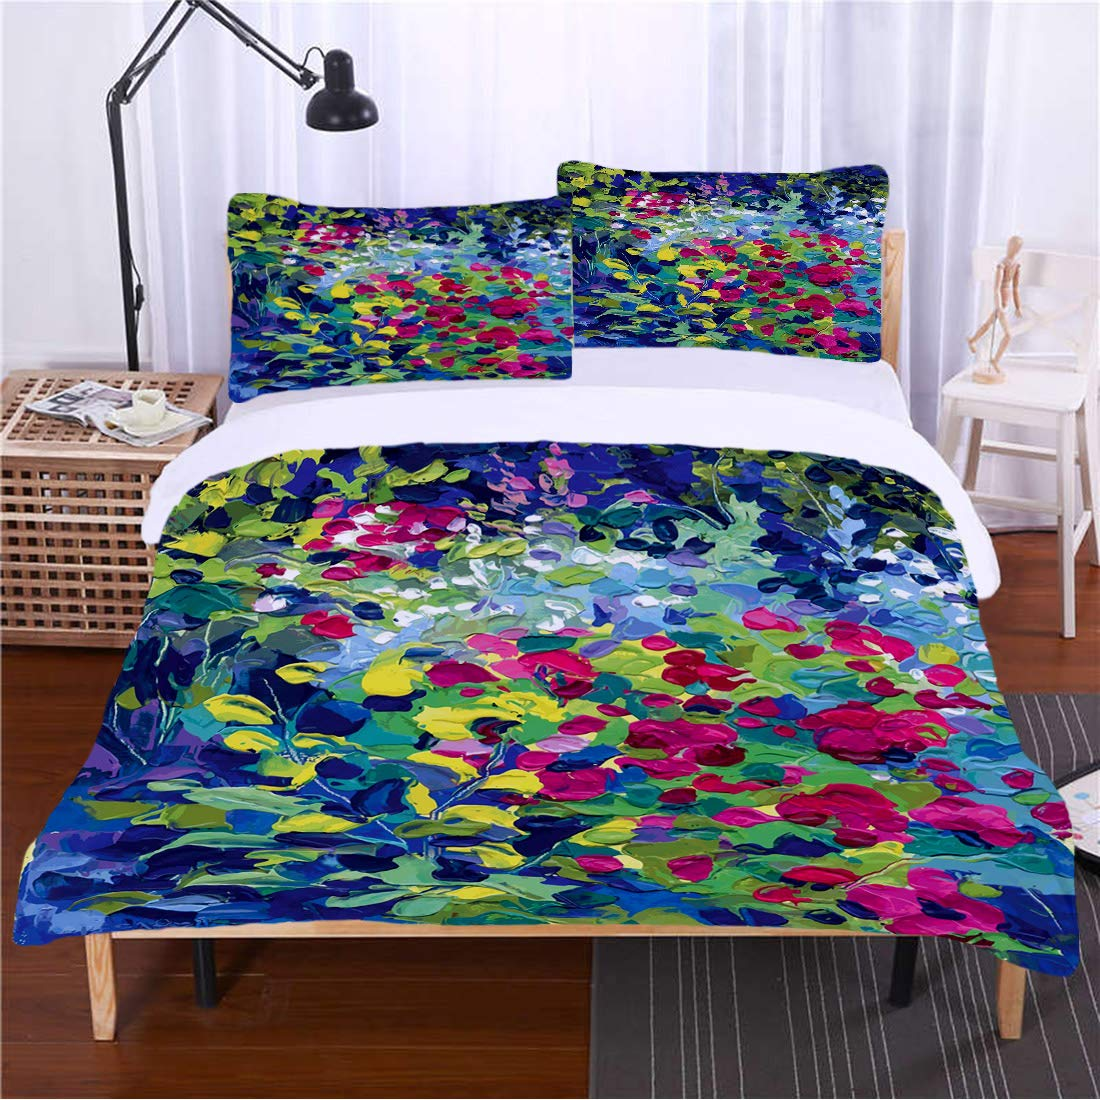 SCOLOMI Bedding 3 Piece Duvet Cover Set Art Floral Field Vivid Toned Pastel Flourishing Fragrance Botany Summer Petals Picture Decorative 2 Pillowcases Luxury Quality Soft Lightweight Breathable,Twin